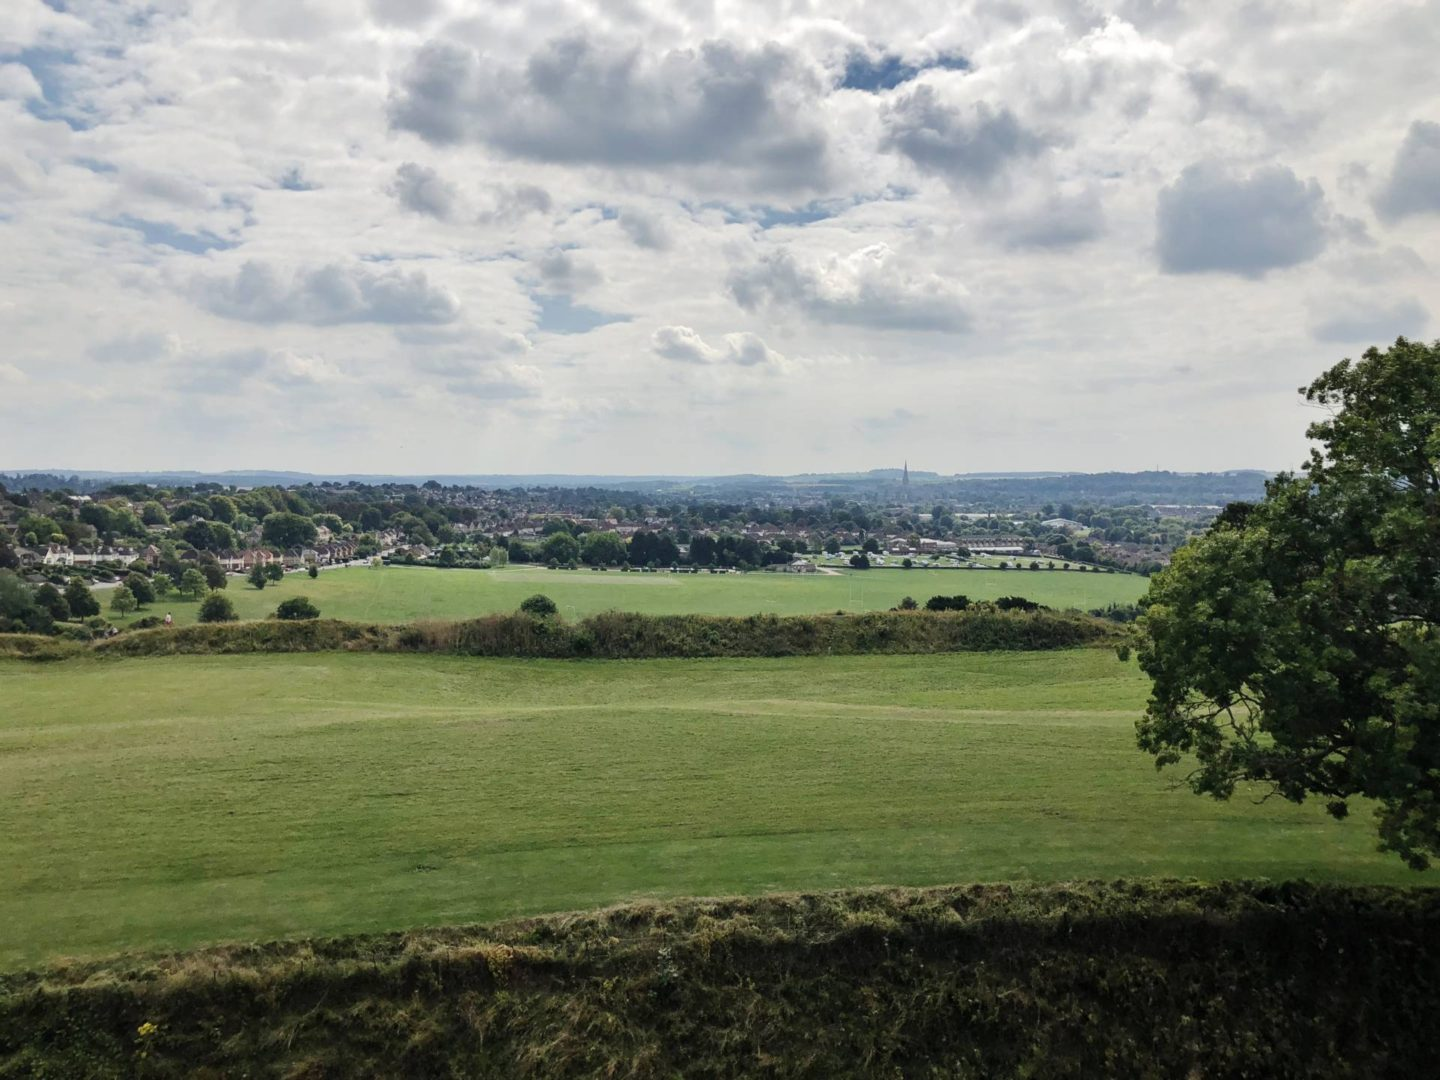 The Old Sarum Salisbury Views